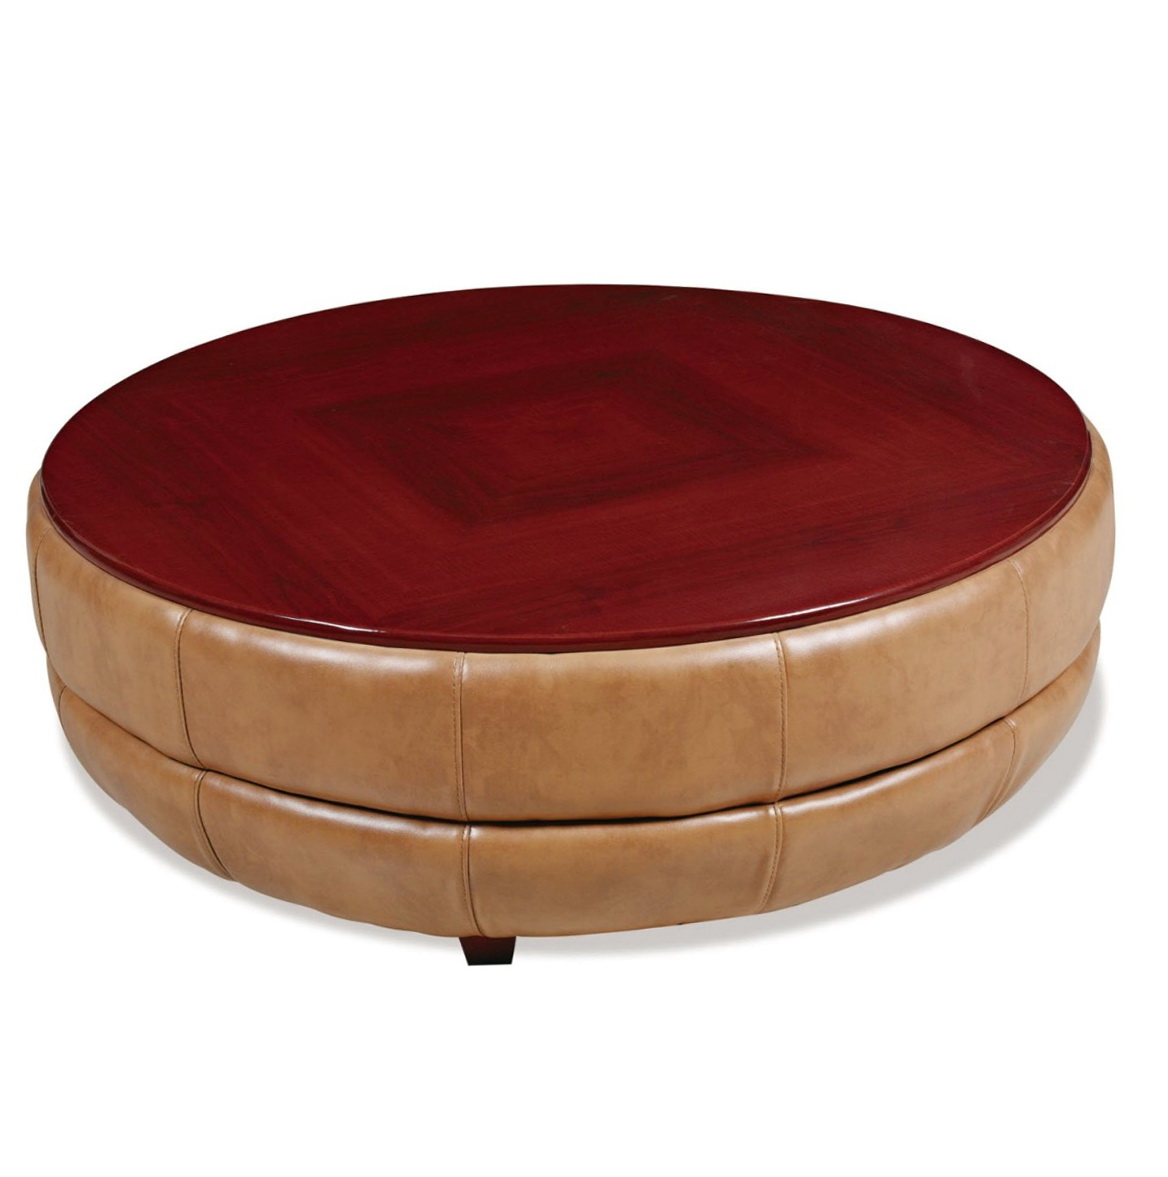 Red leather ottoman coffee table home design ideas Red leather ottoman coffee table